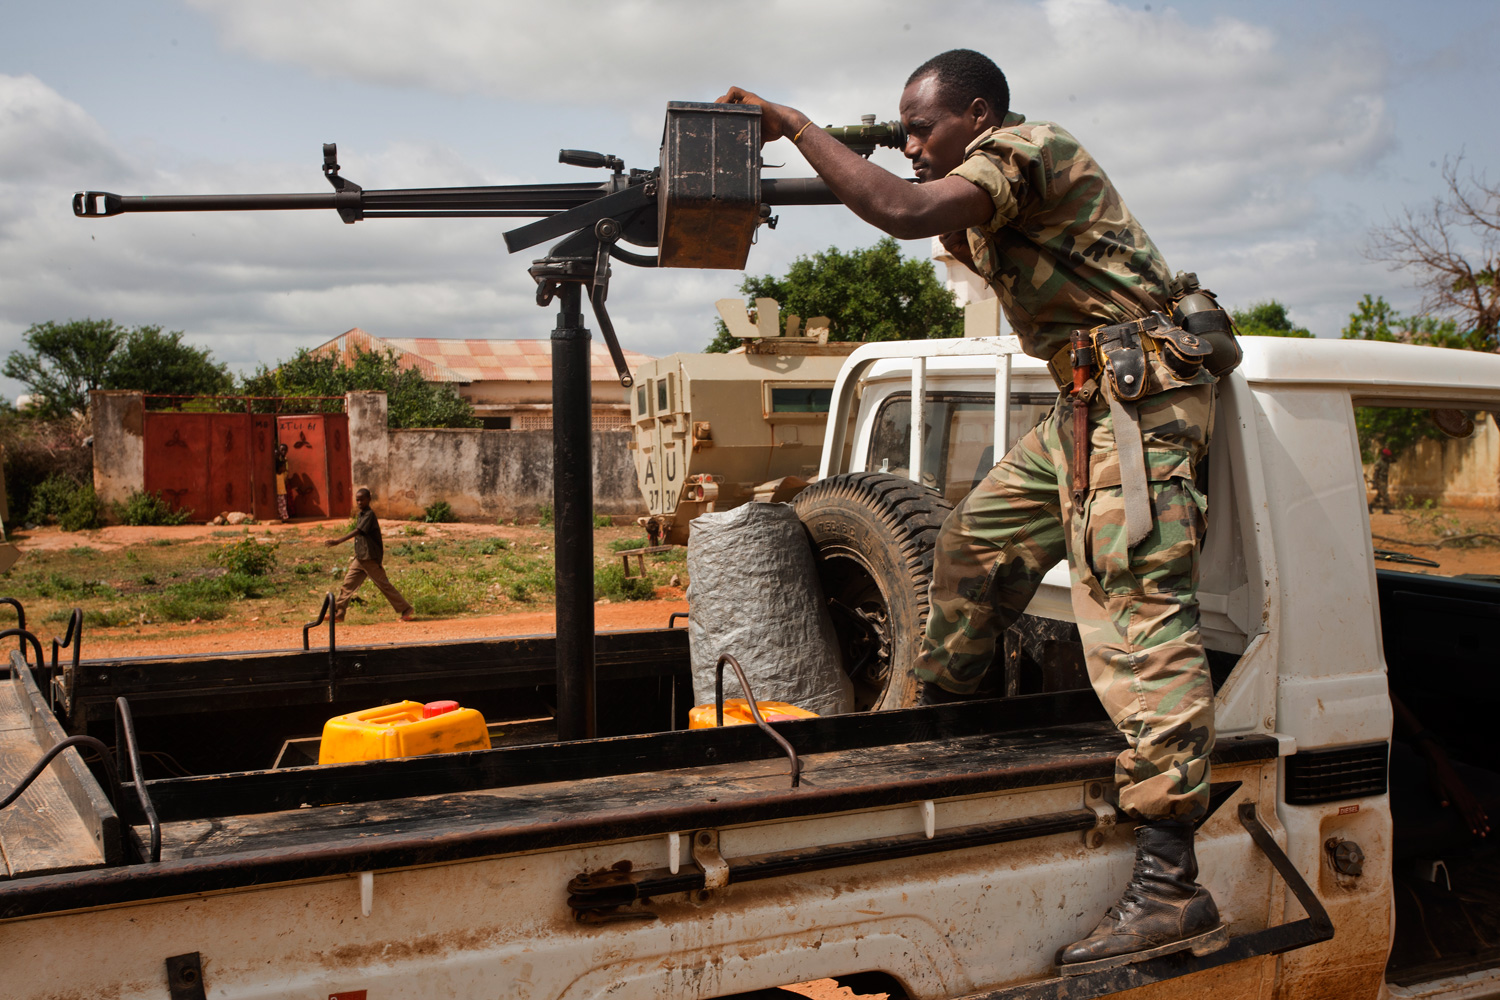 An Ethiopian soldier points his weapon at a possible threat in Baidoa, which has been held by the Ethiopians and will be handed over to the African Union troops.